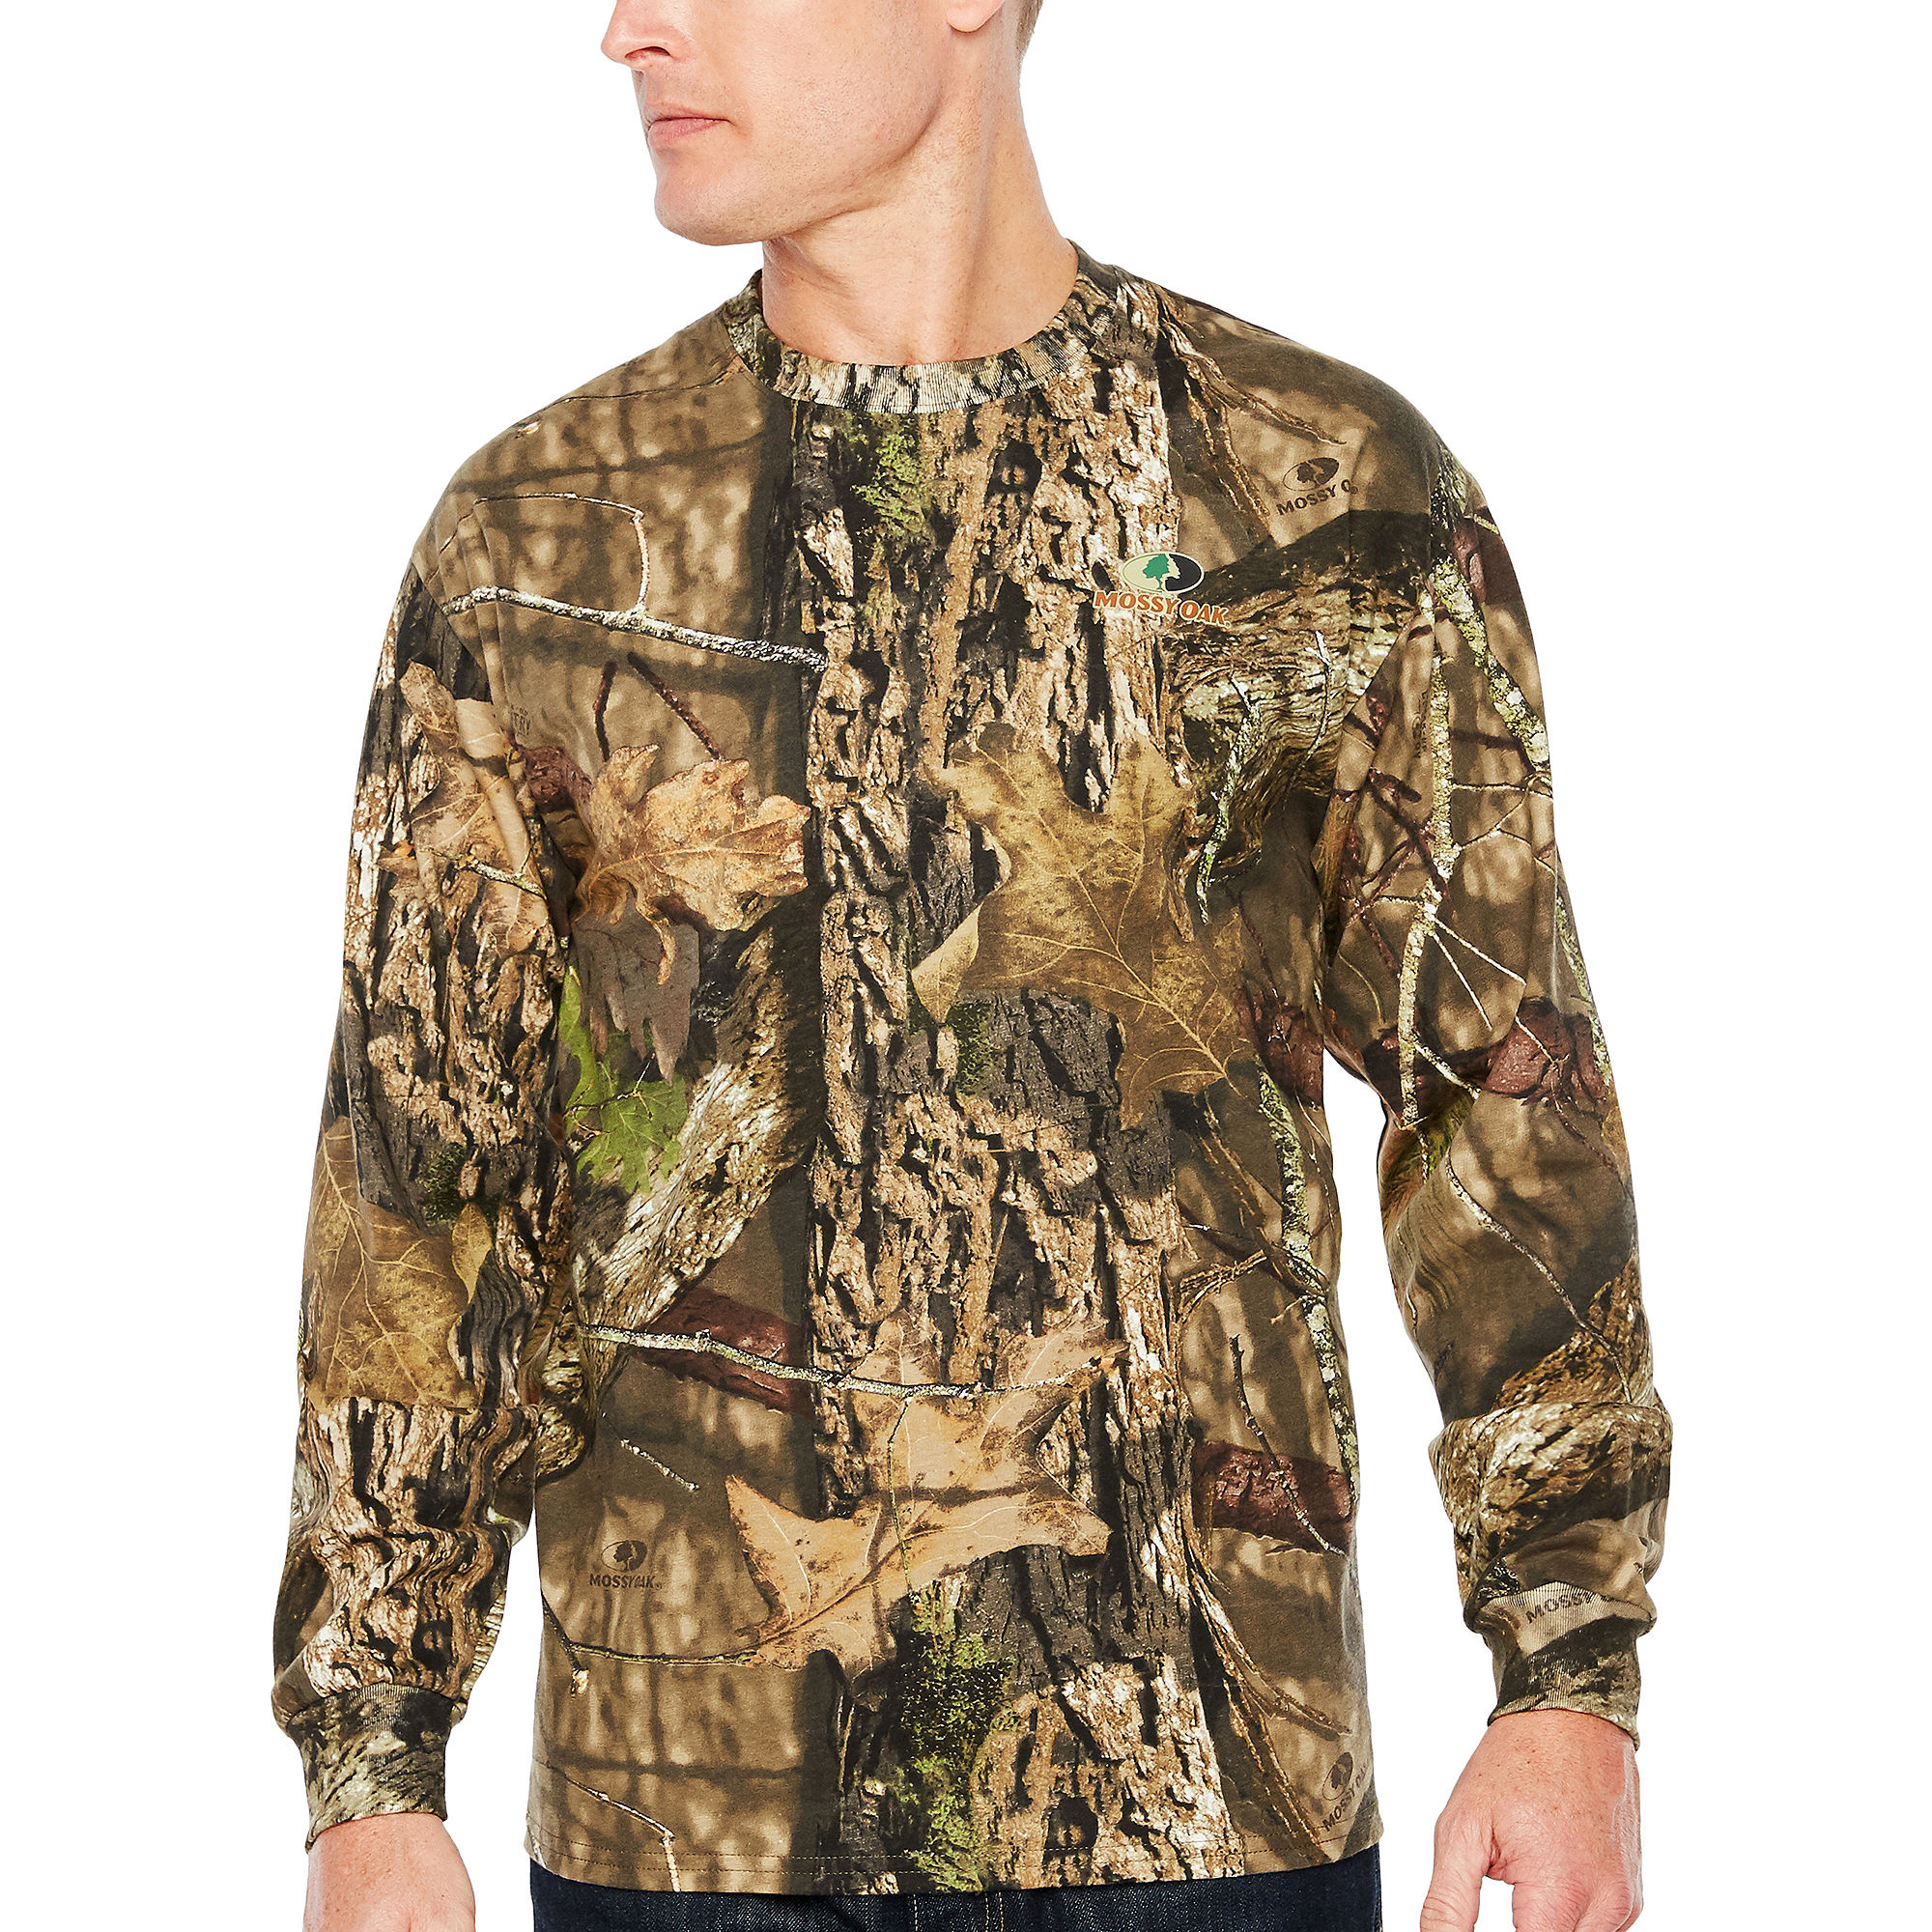 Upc 883096363620 mossy oak long sleeve crew neck t shirt for Gildan camouflage t shirts